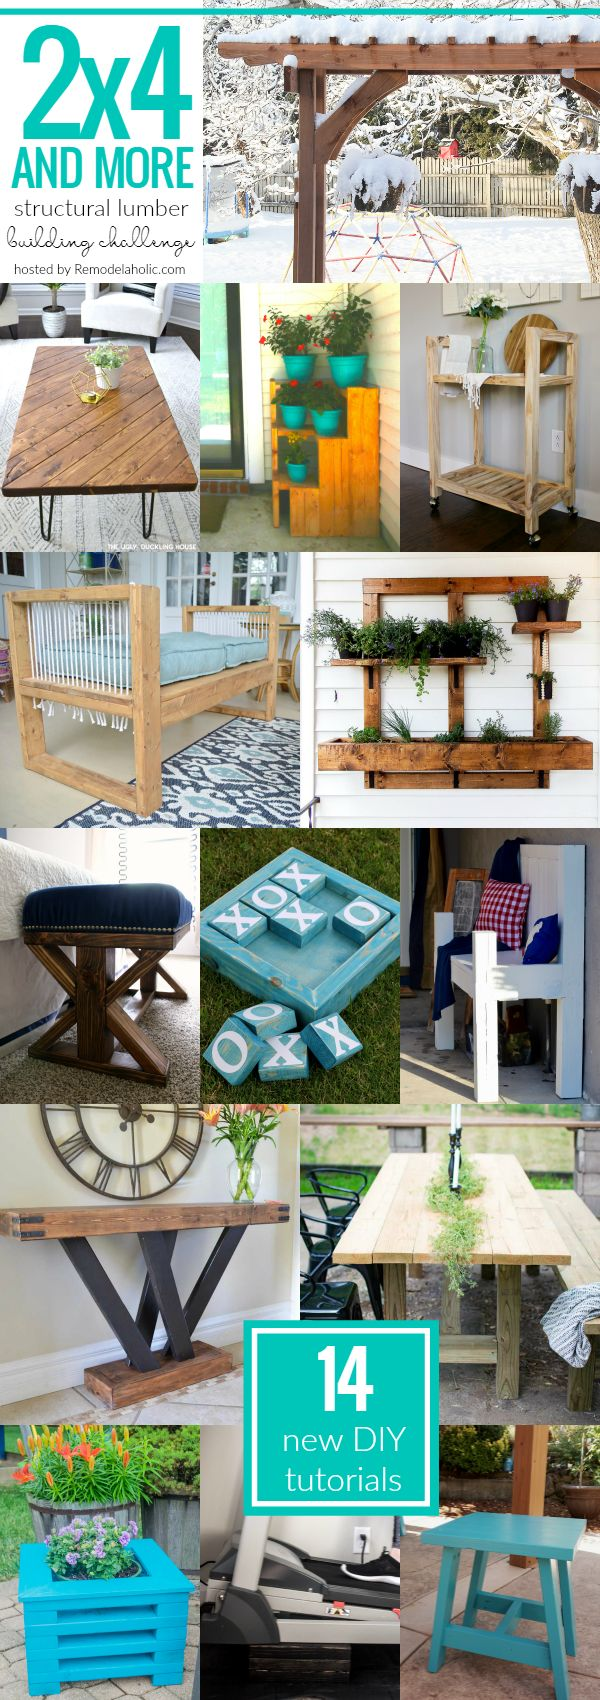 14 Amazing New 2x4 Project Tutorials! All of these projects are built using 2x4s and other budget-friendly structural lumber, and they are perfect for your home, yard, and garden.